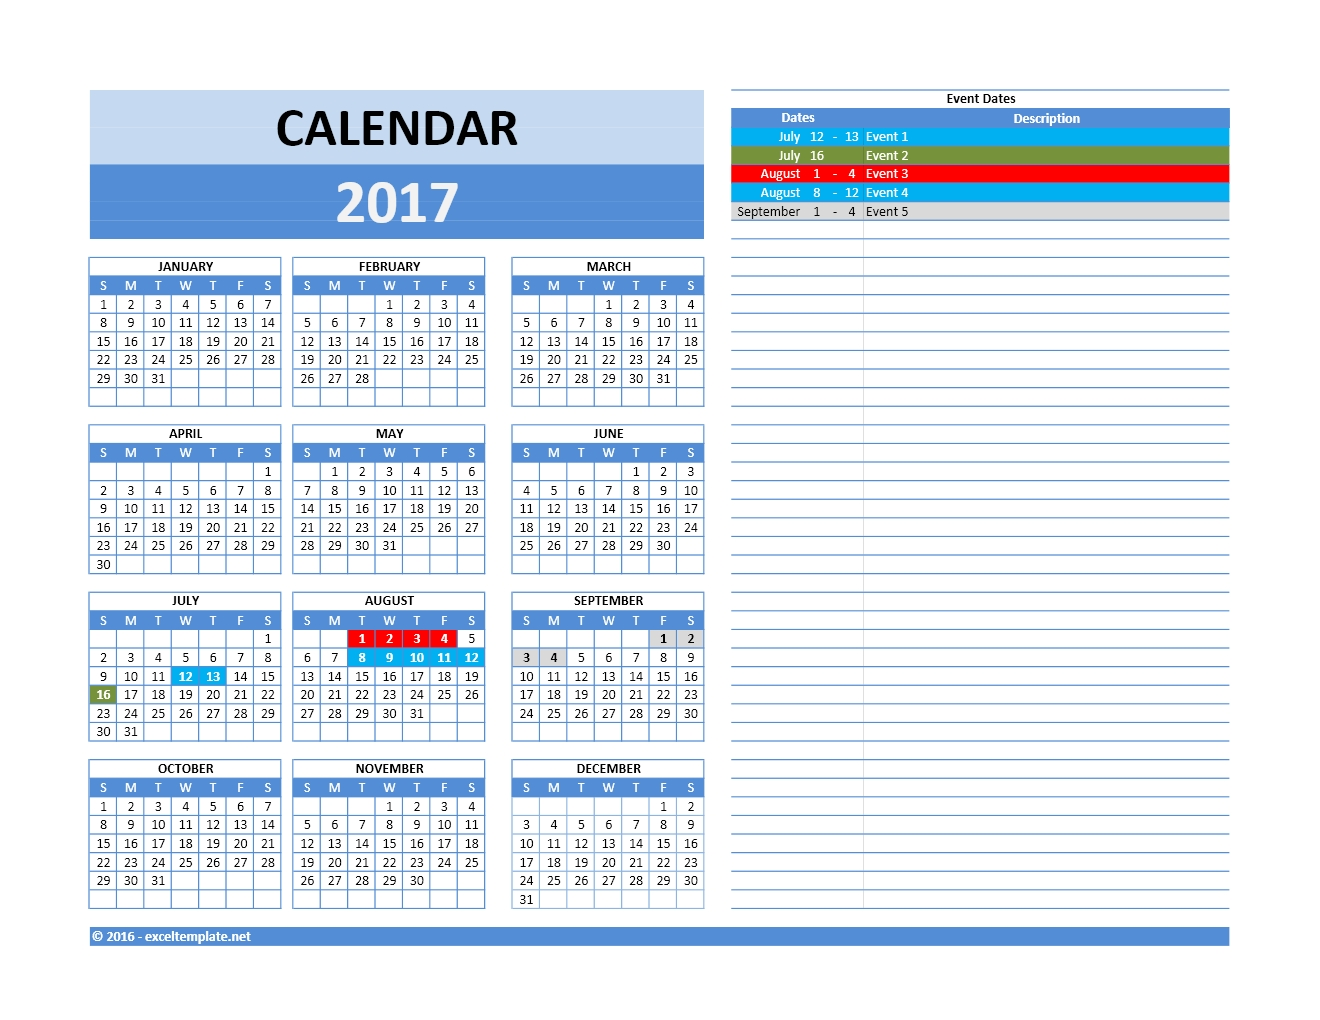 Calendar Templates Excel : And calendars excel templates